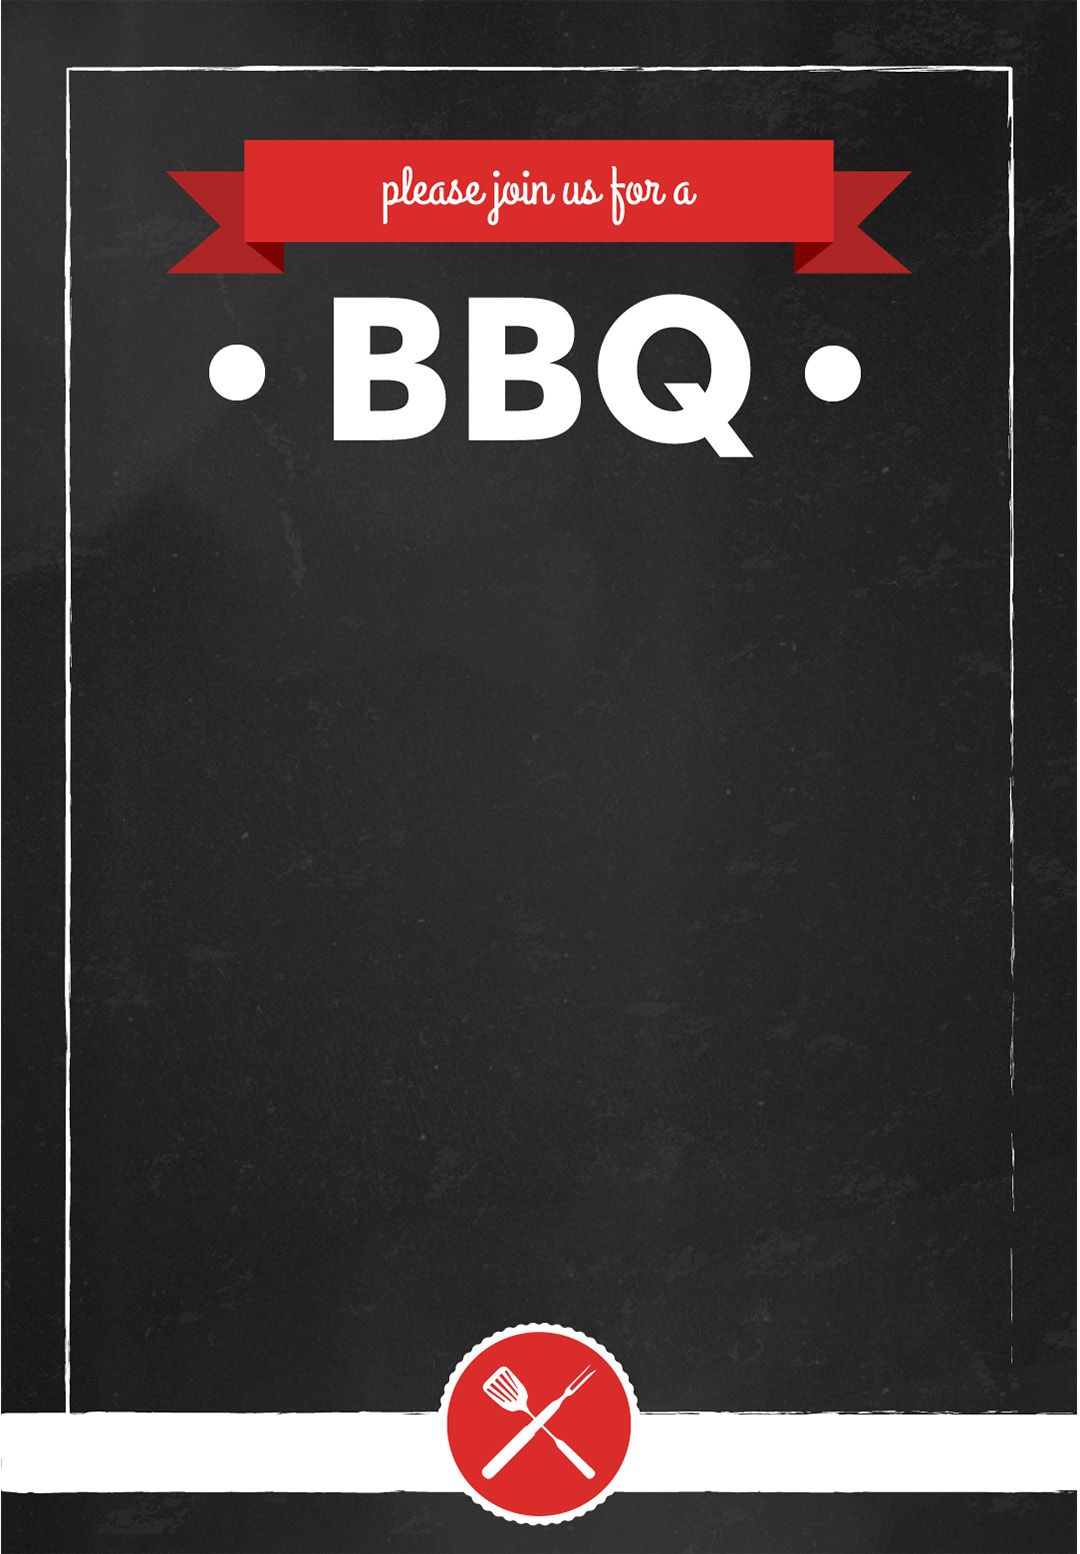 image relating to Free Printable Bbq Invitations named Sign up for Us for a BBQ - BBQ Occasion Invitation Template (Absolutely free